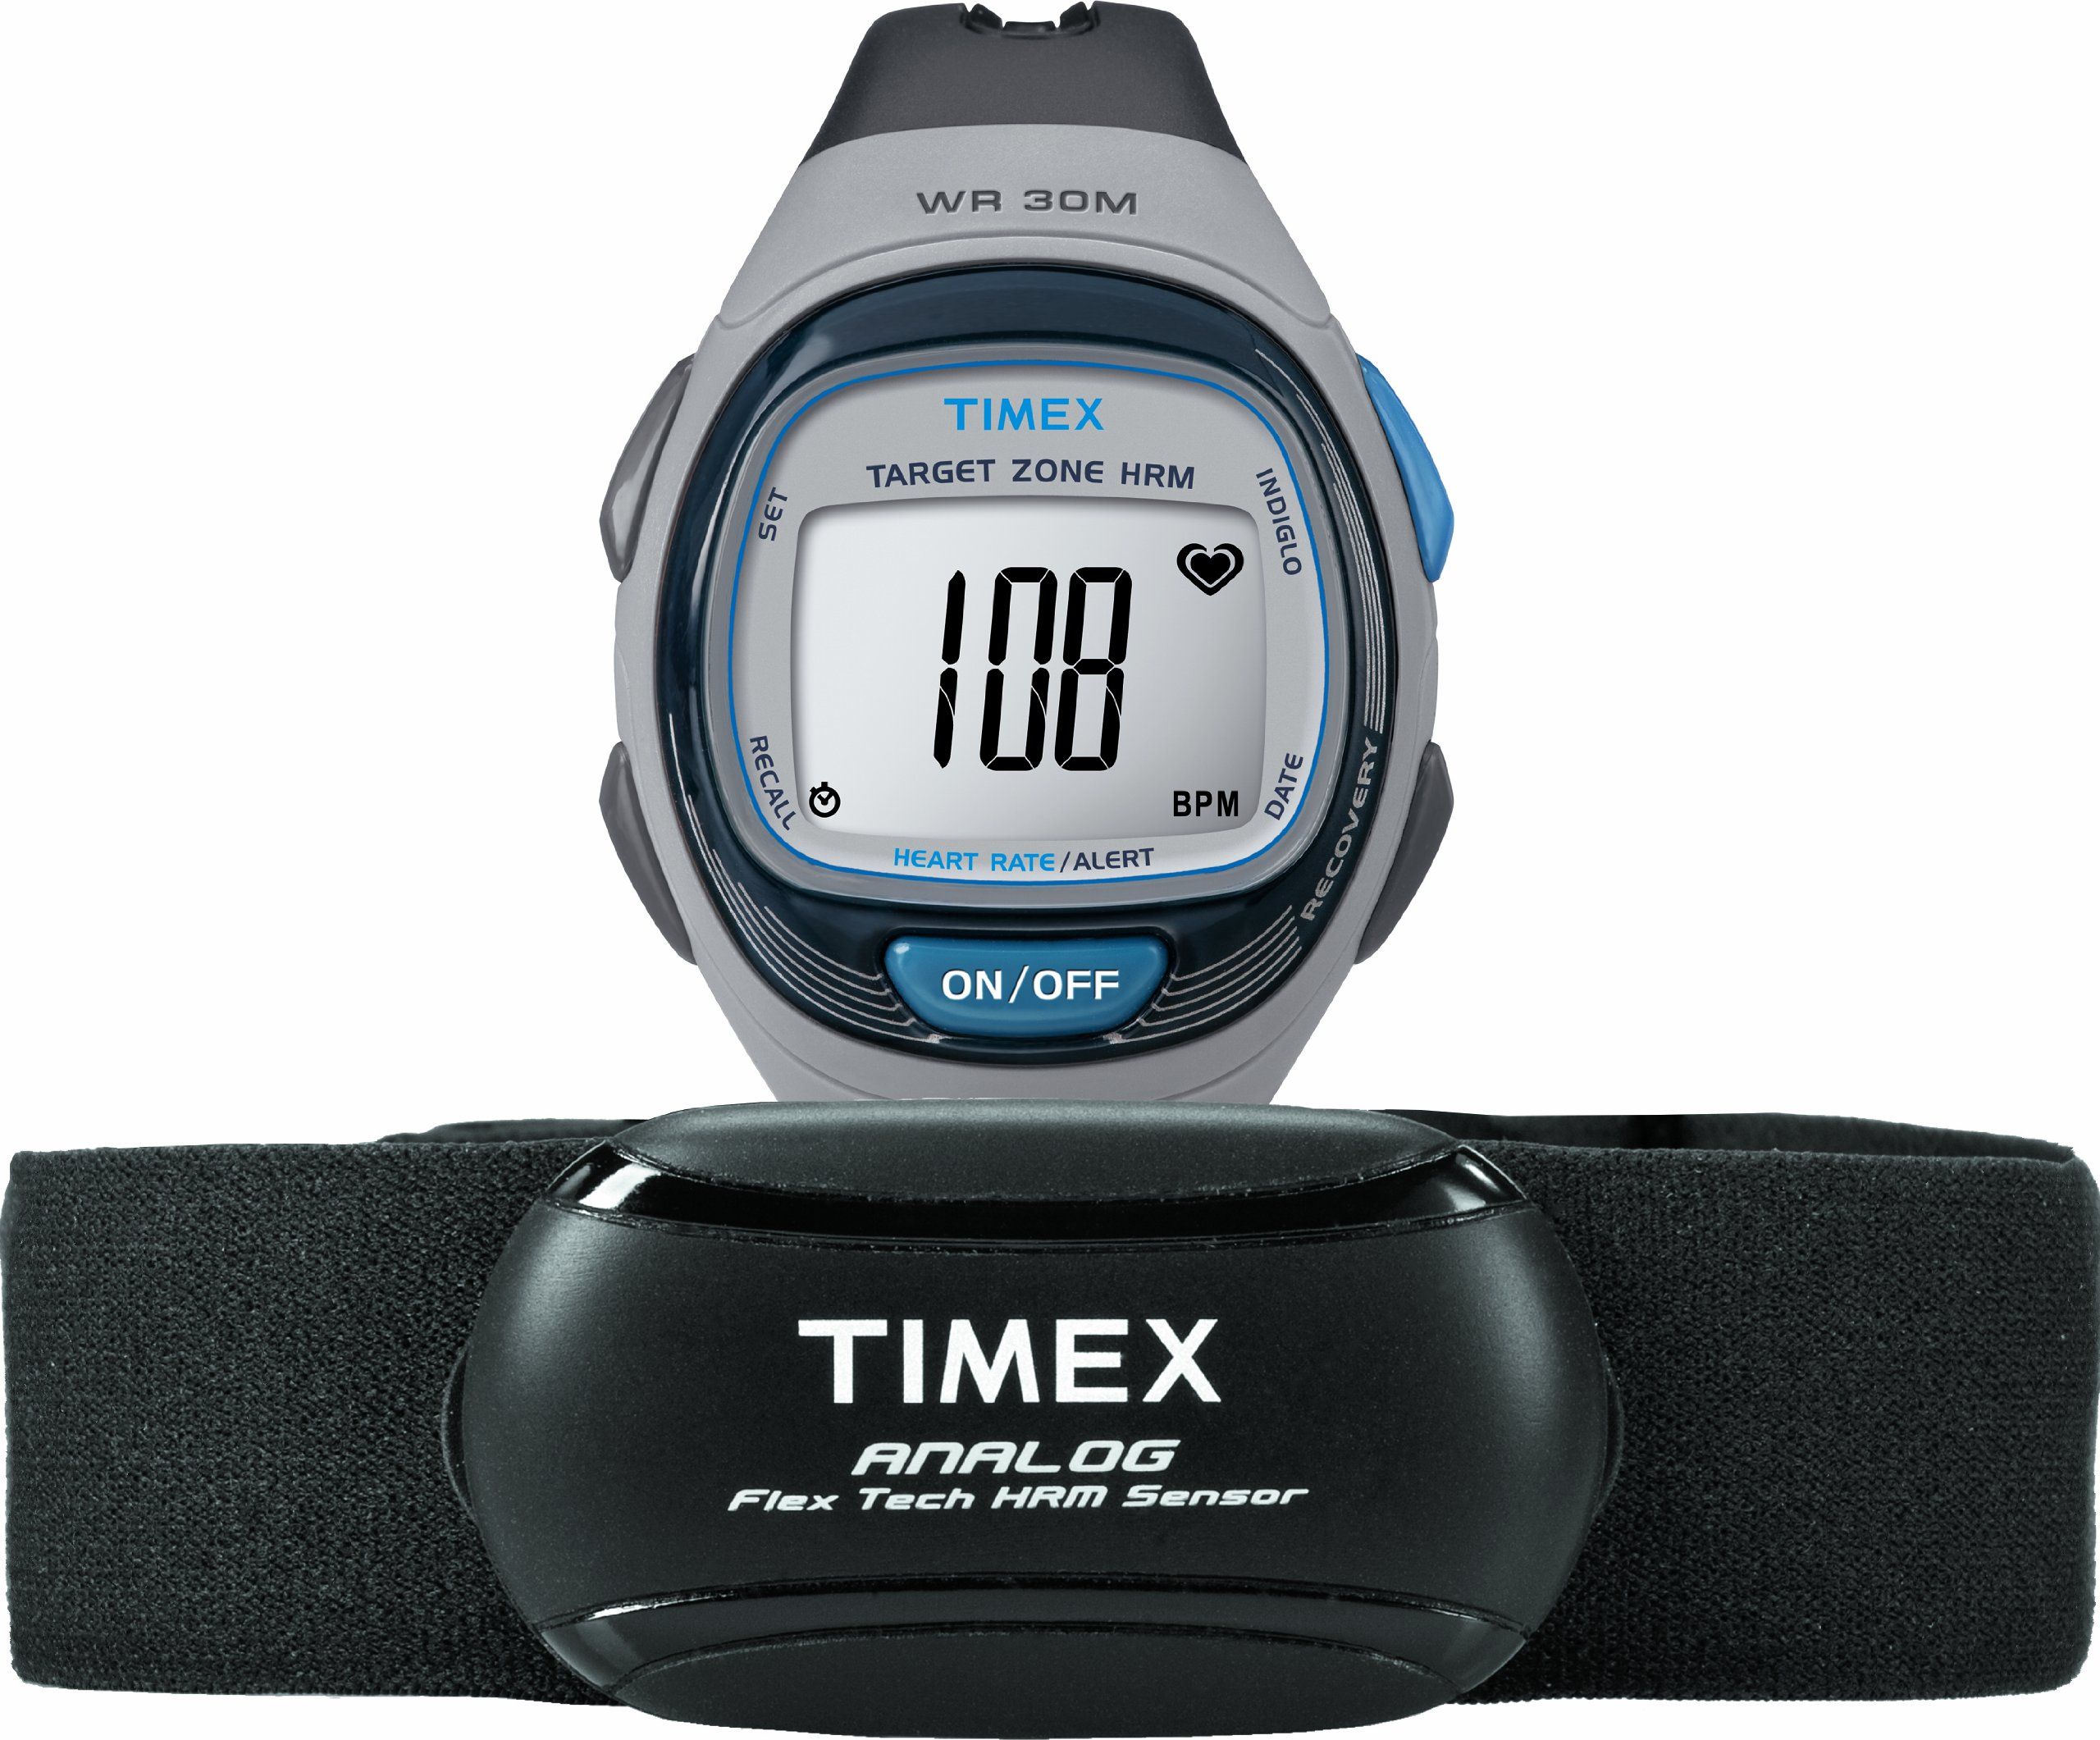 Timex timex personal trainer heart rate monitor watch with heart.